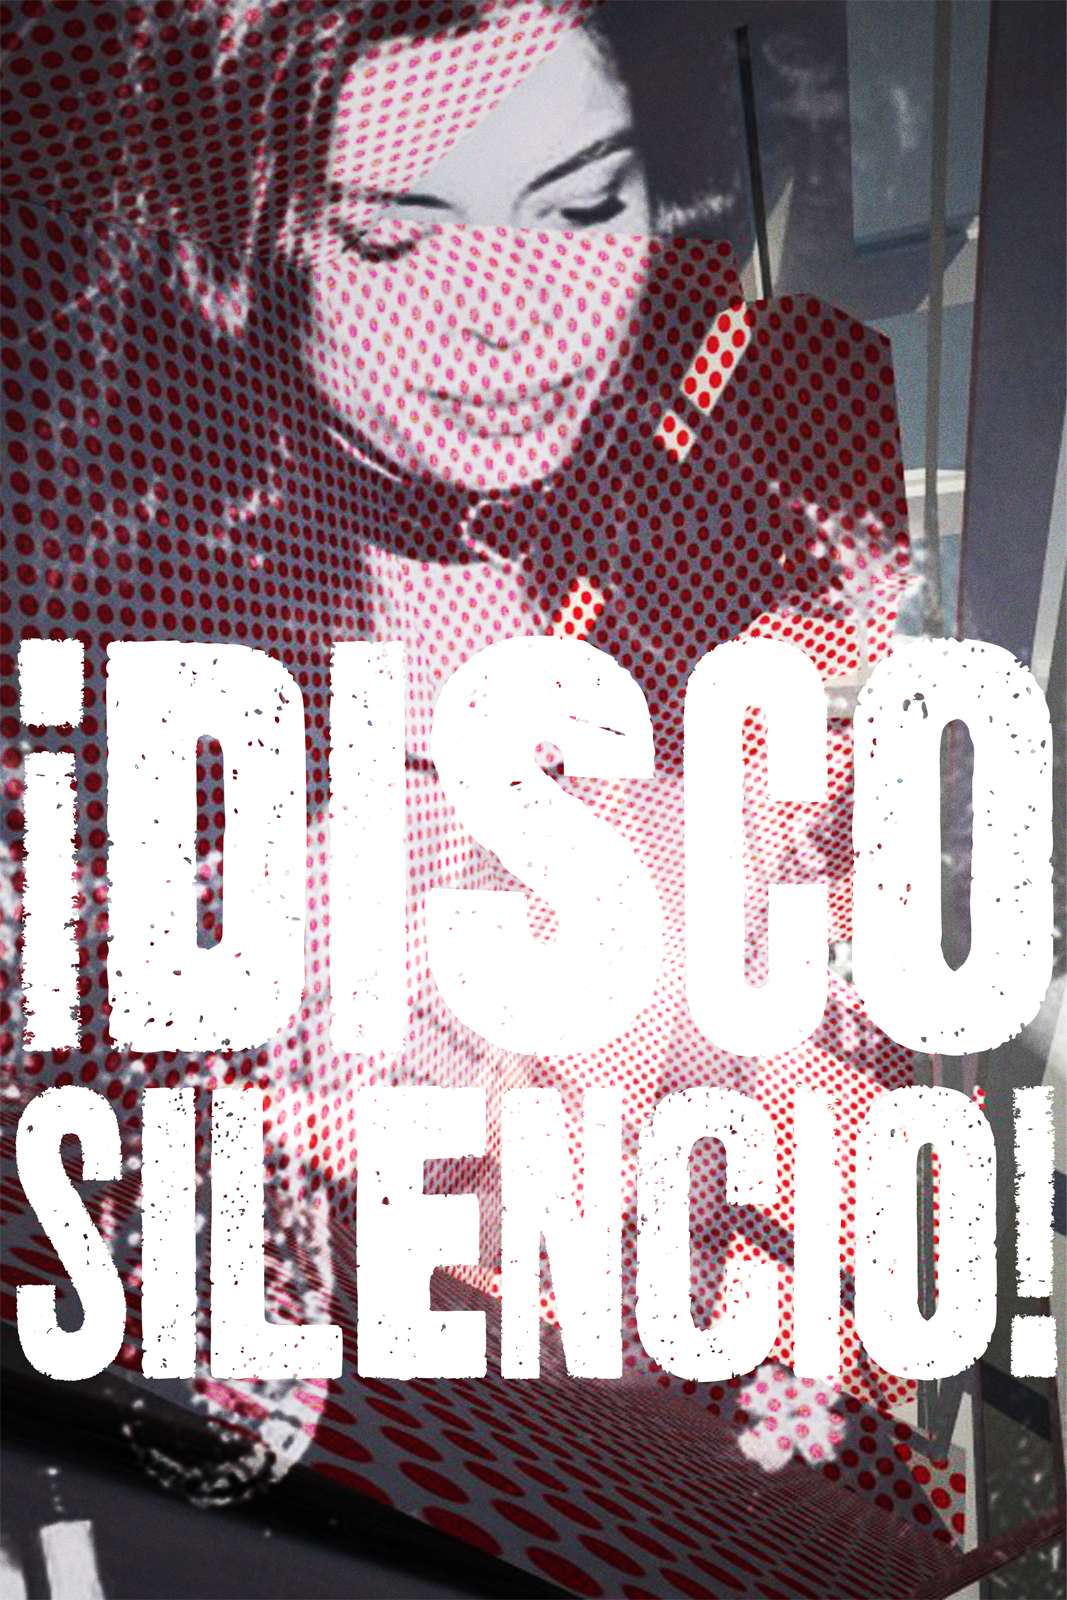 Disco Silencio is on view at the Sci-Arc gallery until May 15th.